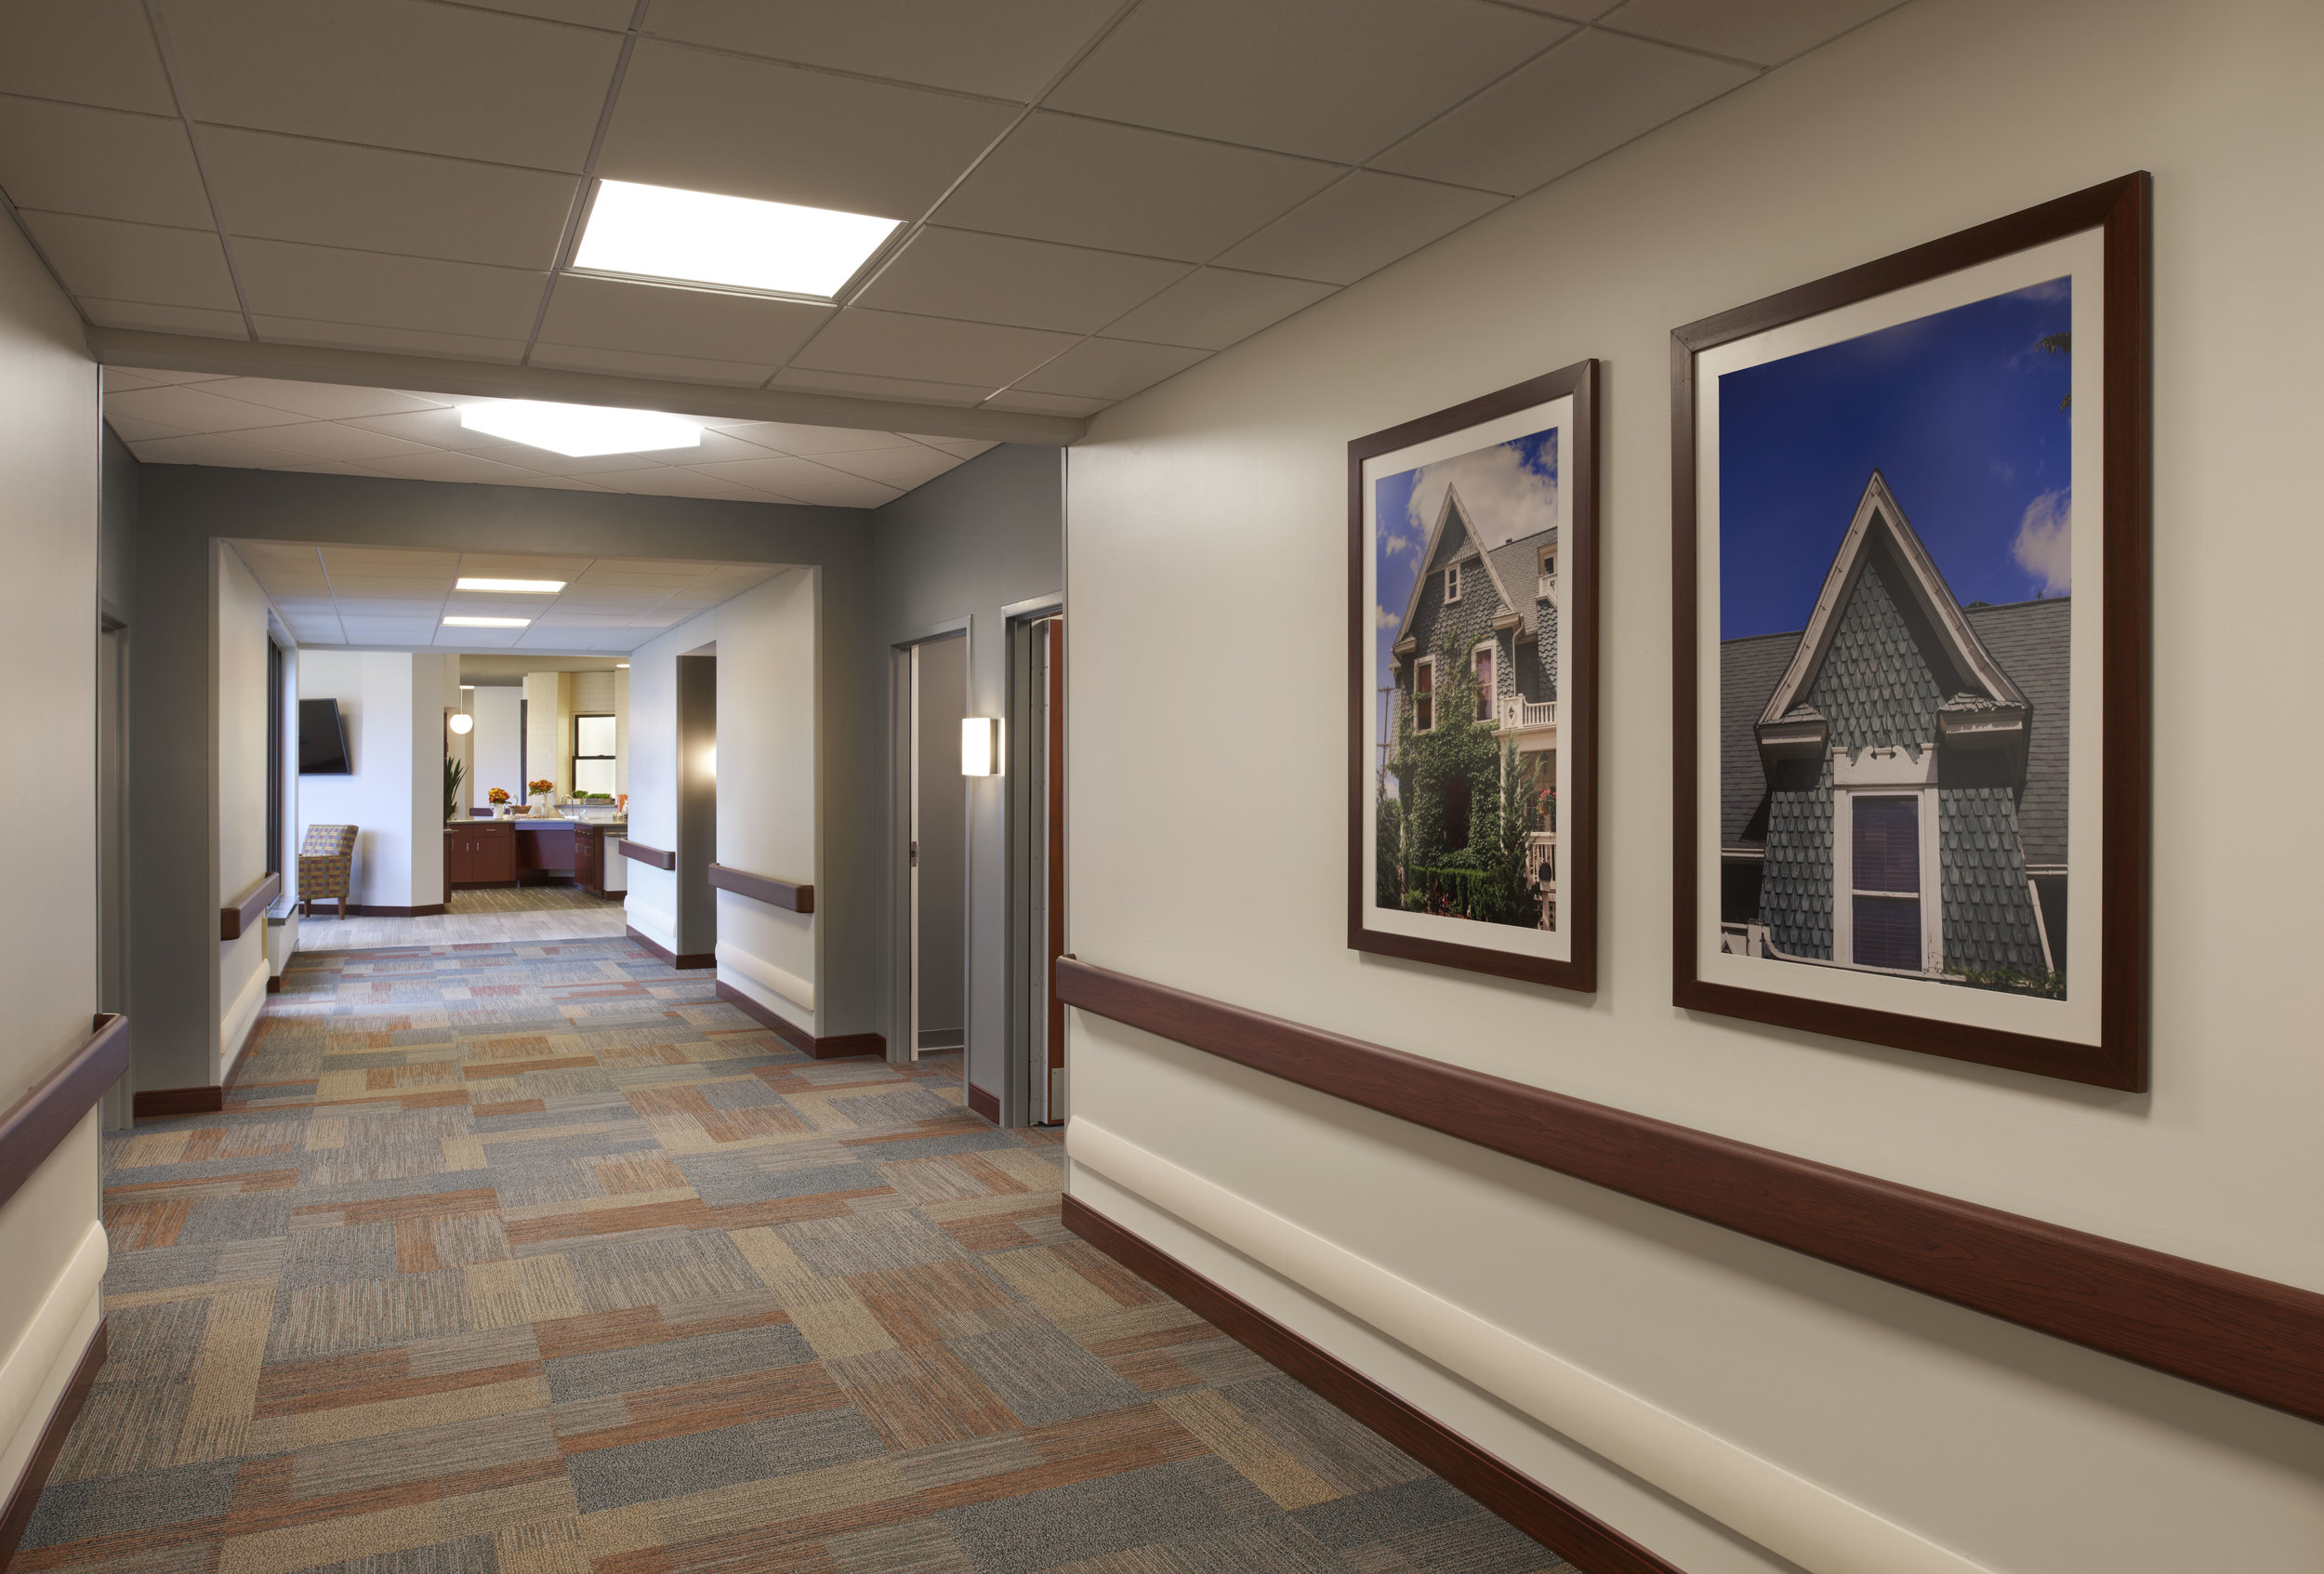 Quiet resident corridors are tucked around corners, leading to resident suites that look and feel like a modern hotel room.